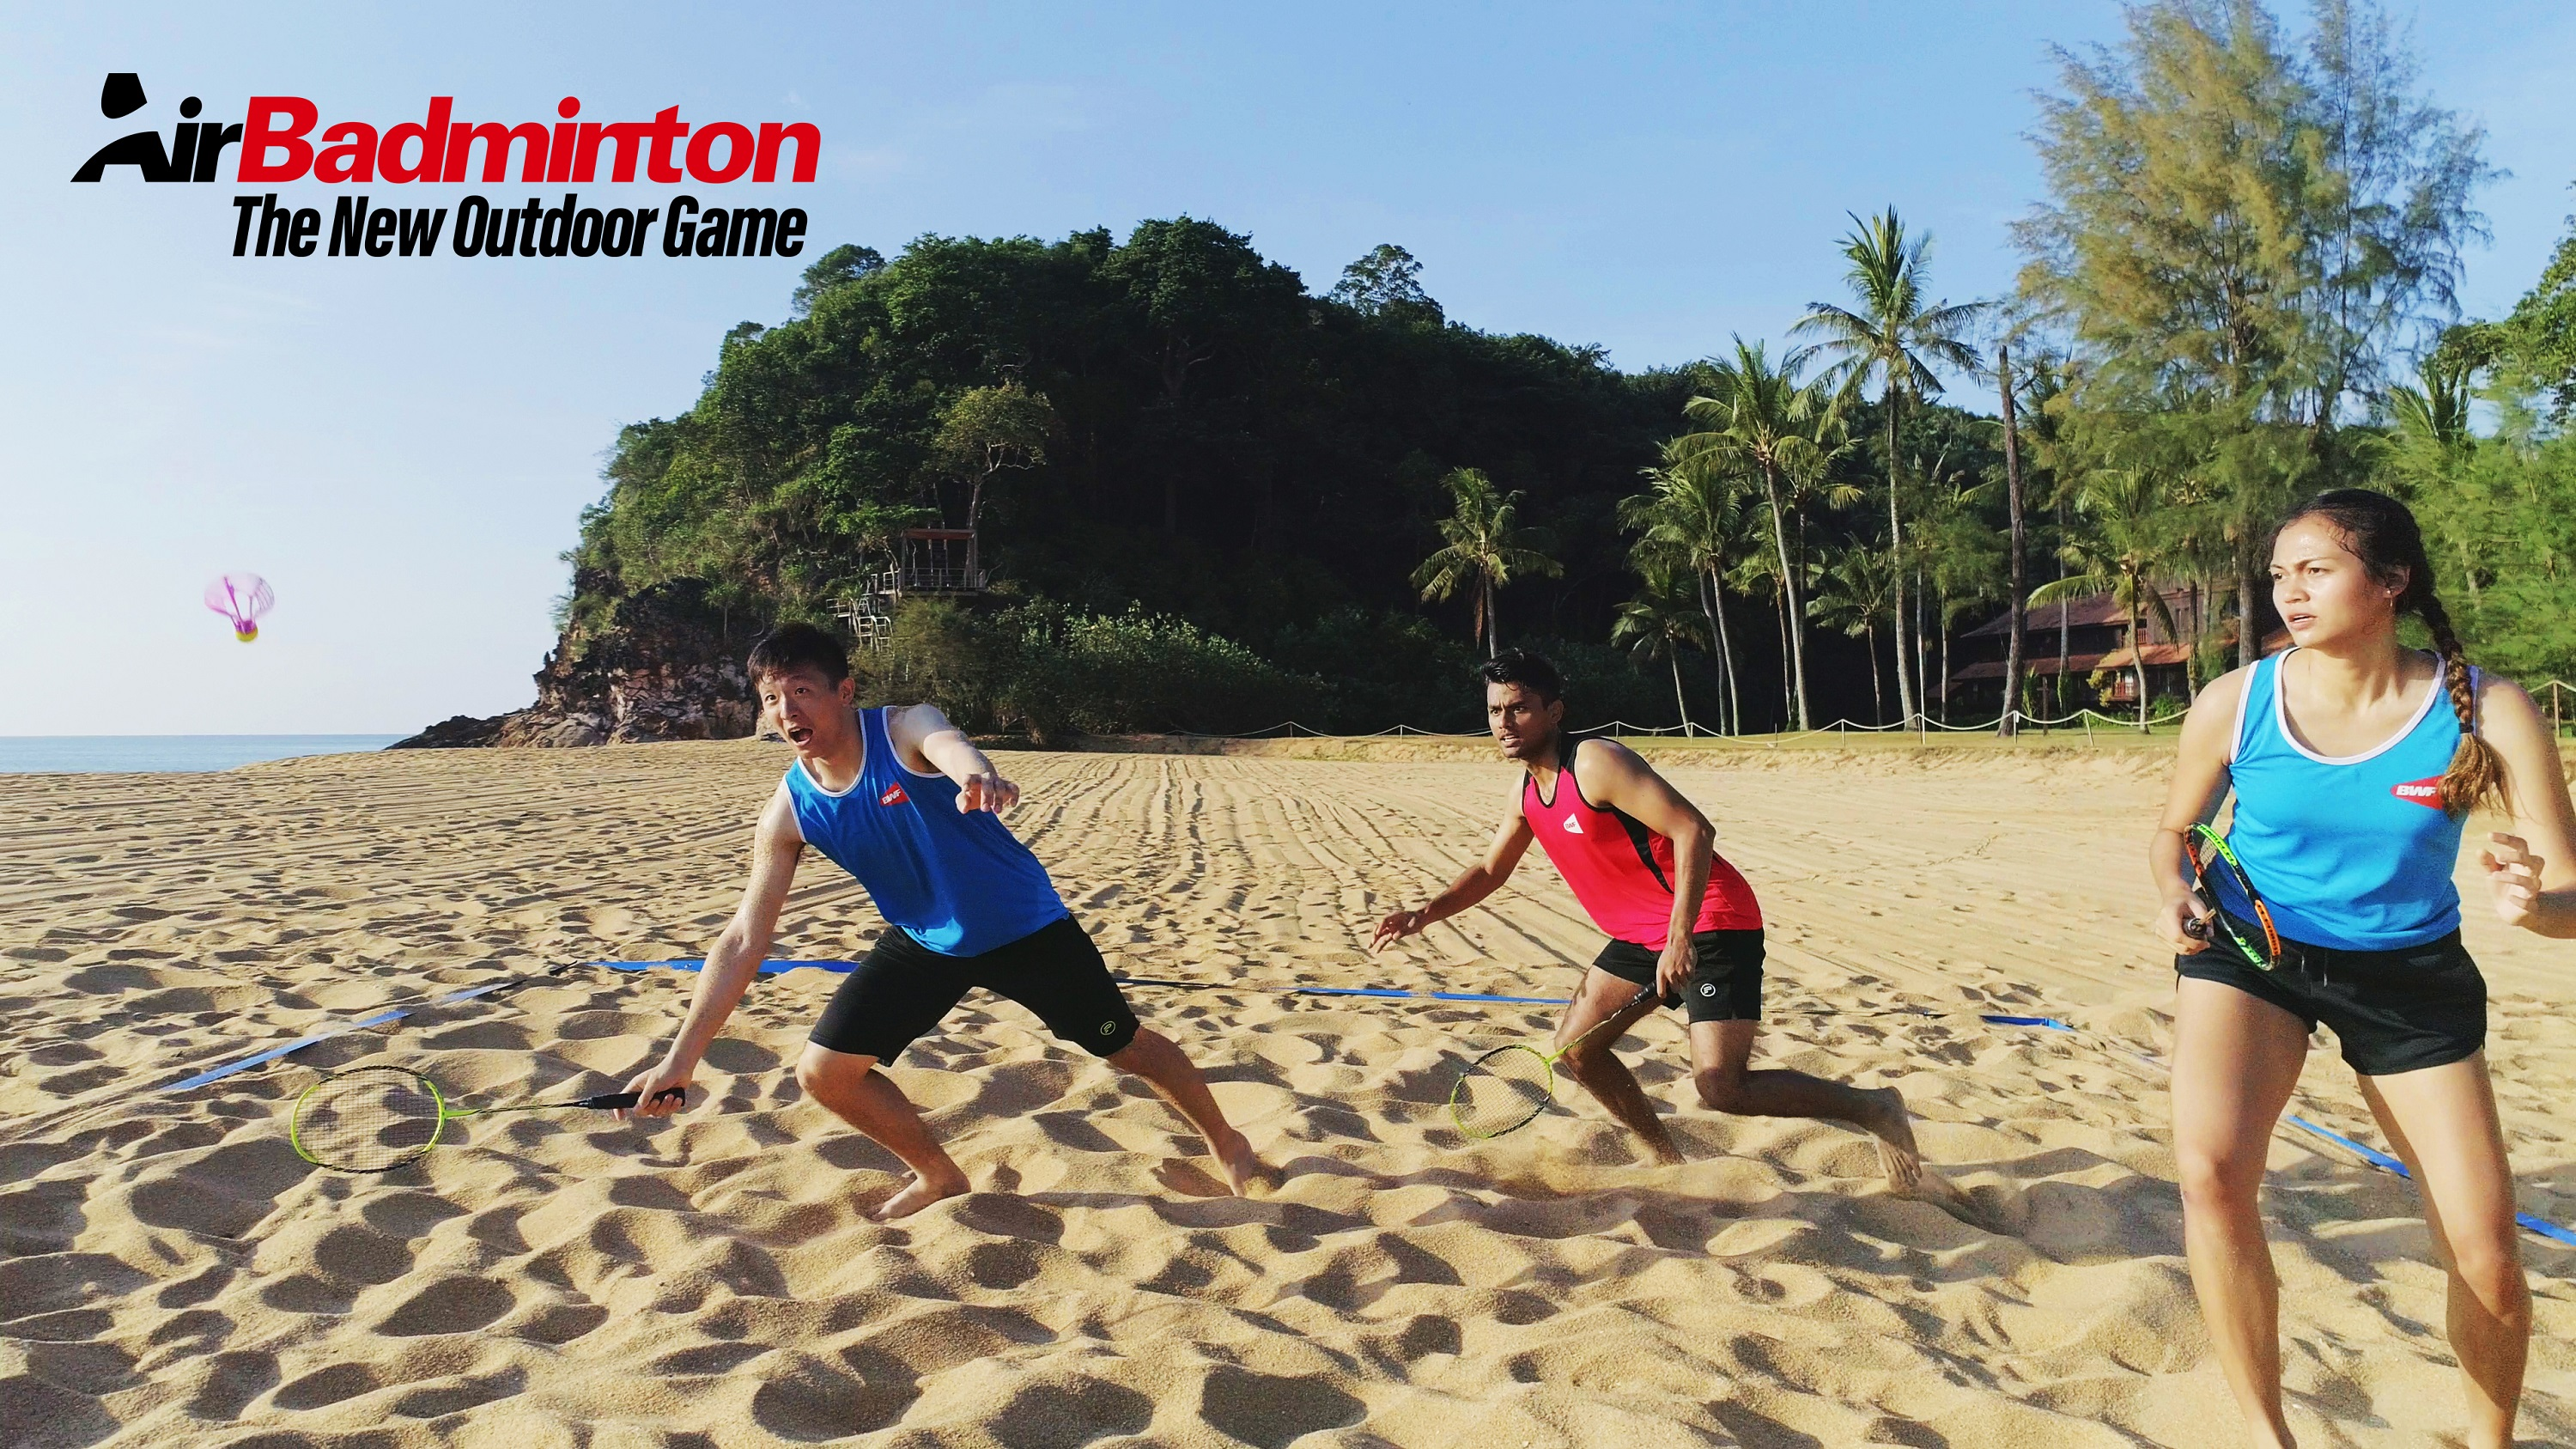 AirBadminton - The New Outdoor Game is here! - Badminton ...